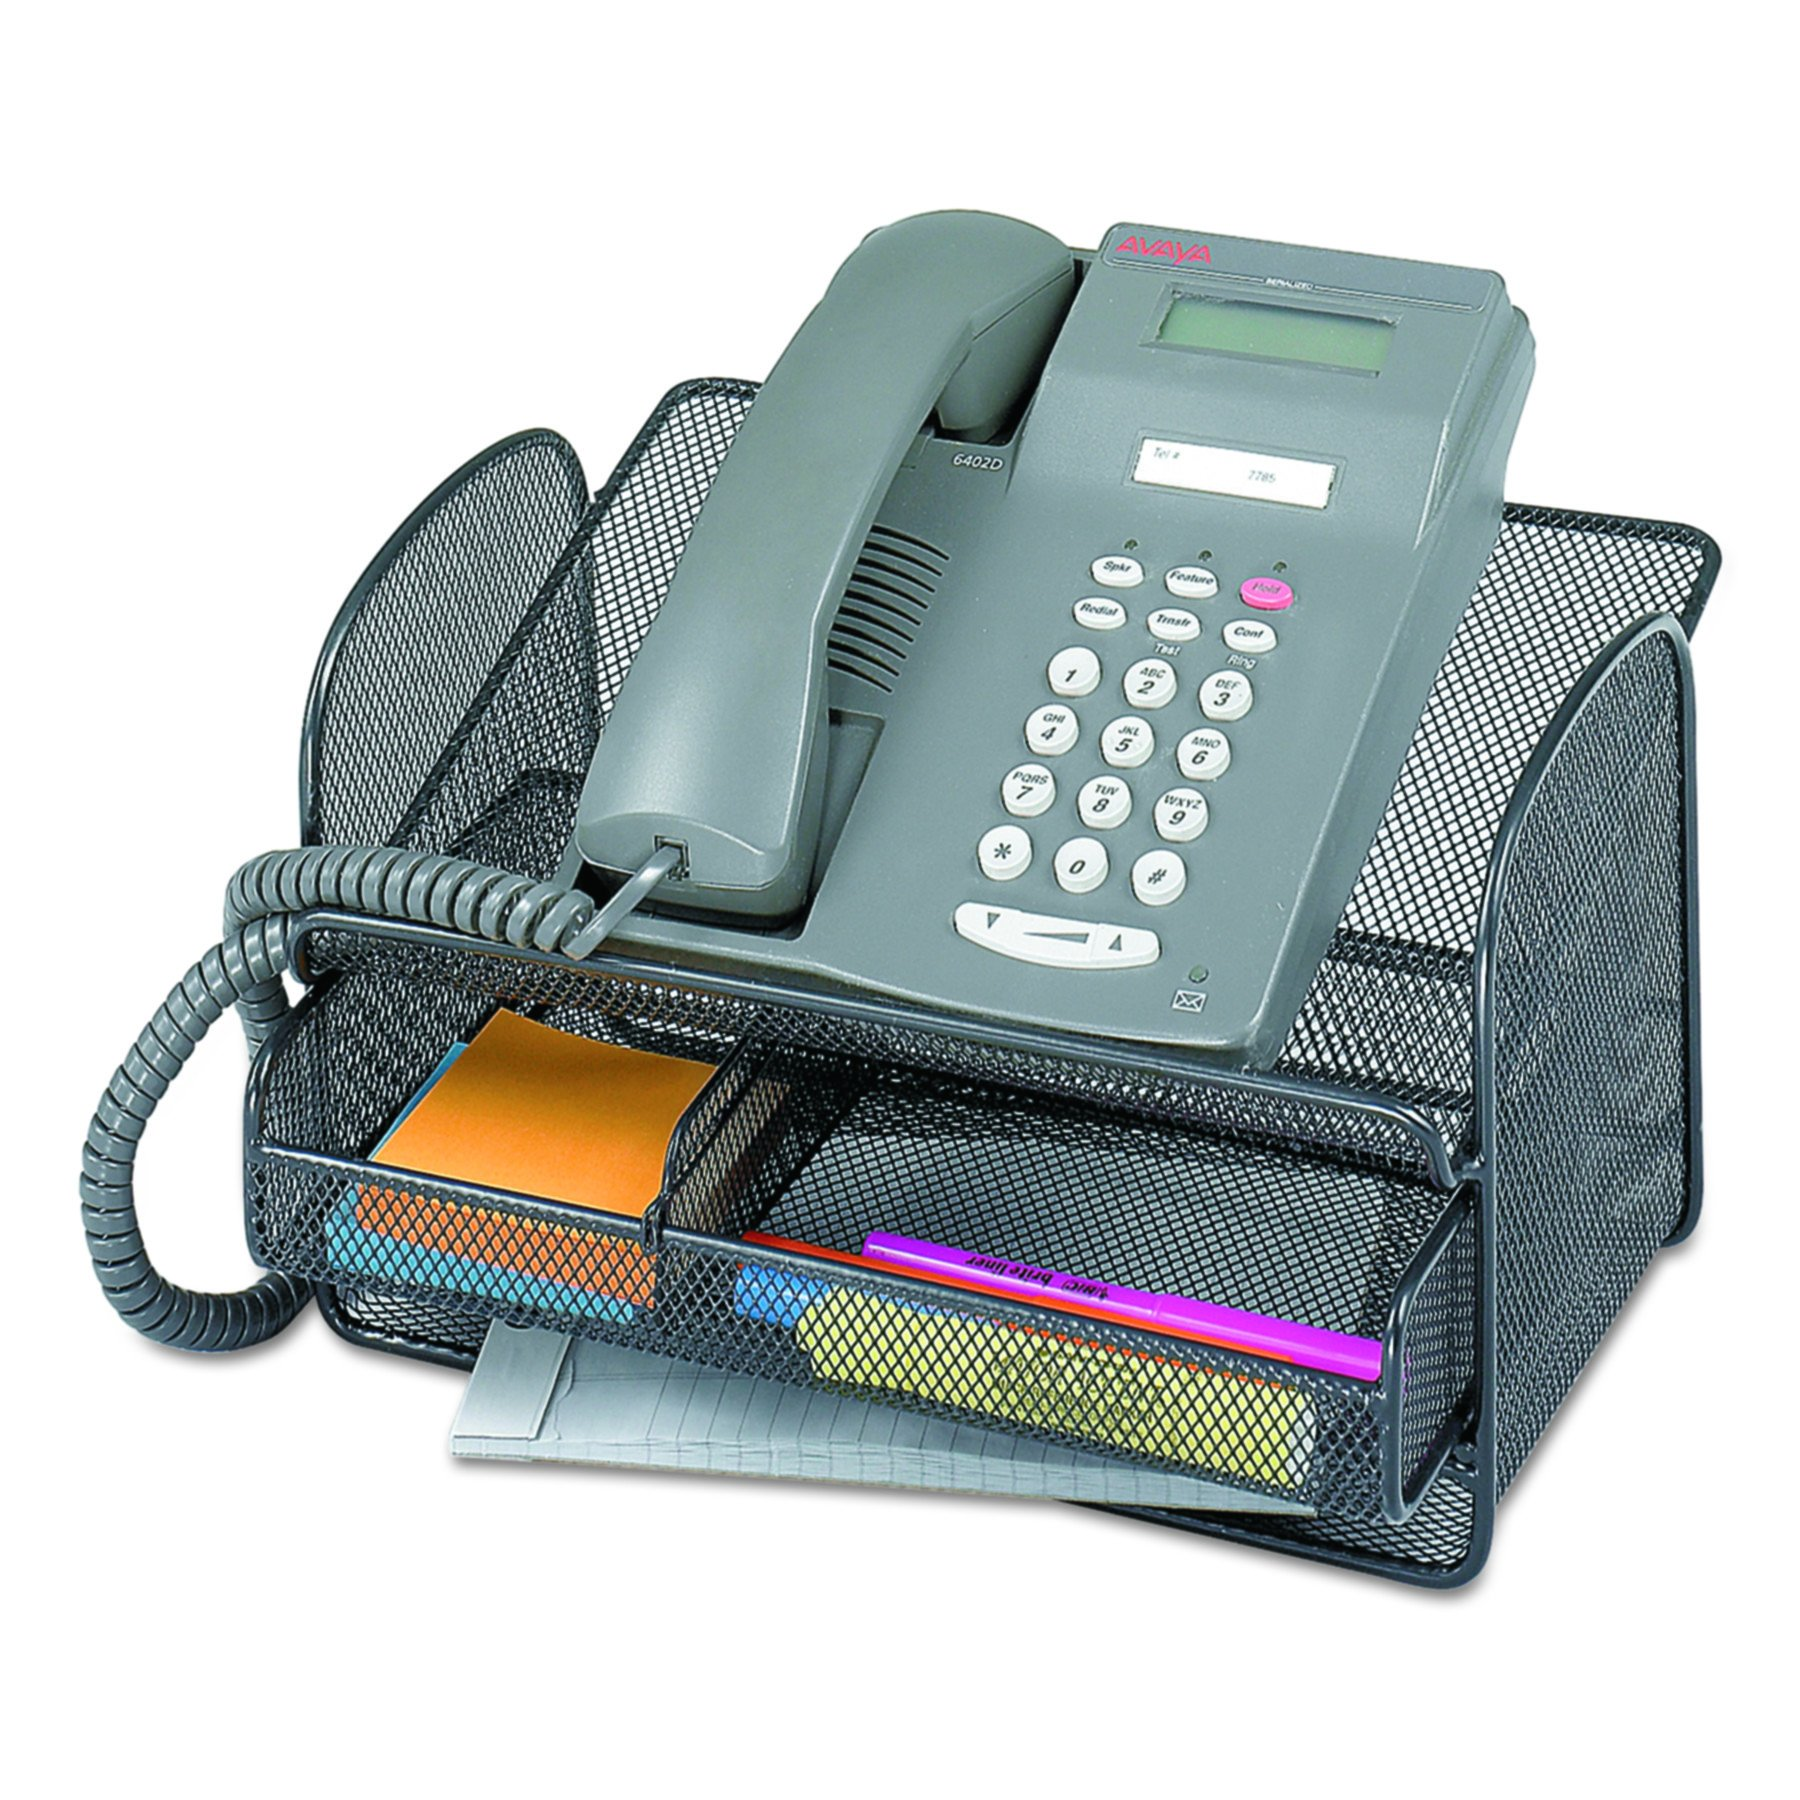 Safco 2160BL Onyx Angled Mesh Steel Telephone Stand, 11 3/4 x 9 1/4 x 7, Black by Safco